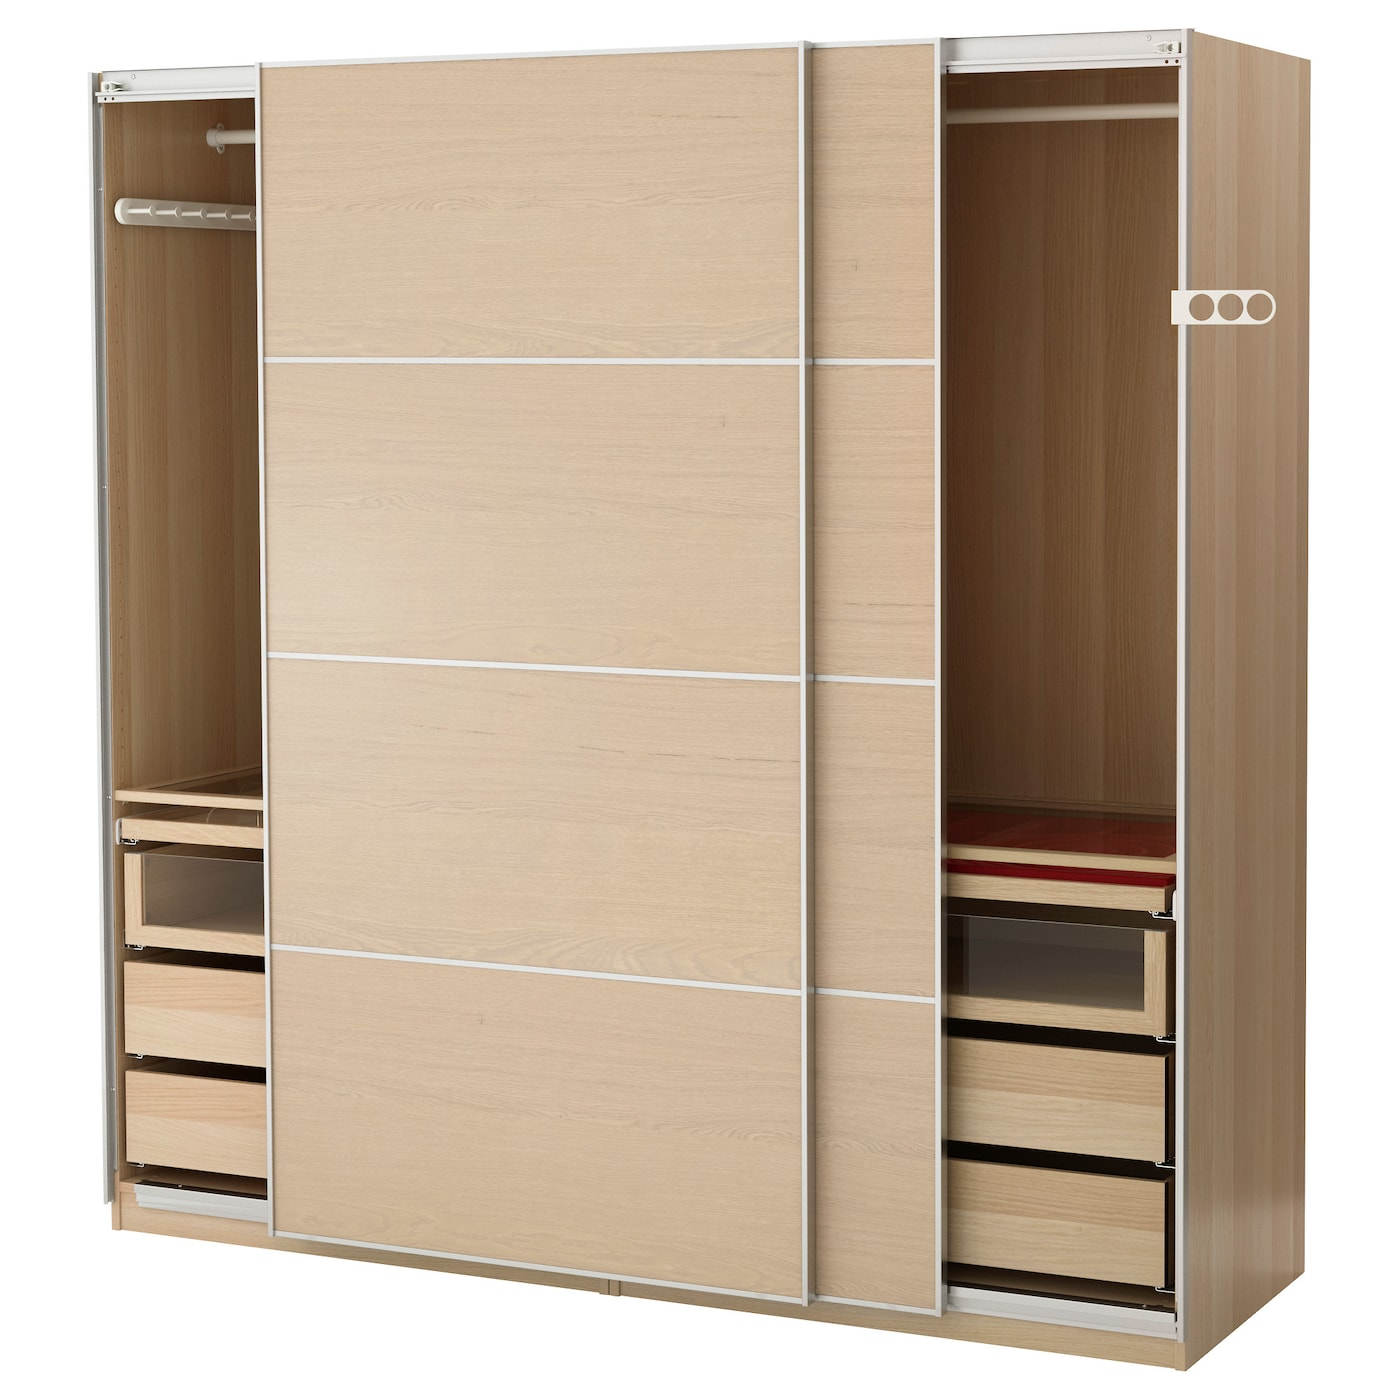 PAX Wardrobes Design your own wardrobe at IKEA